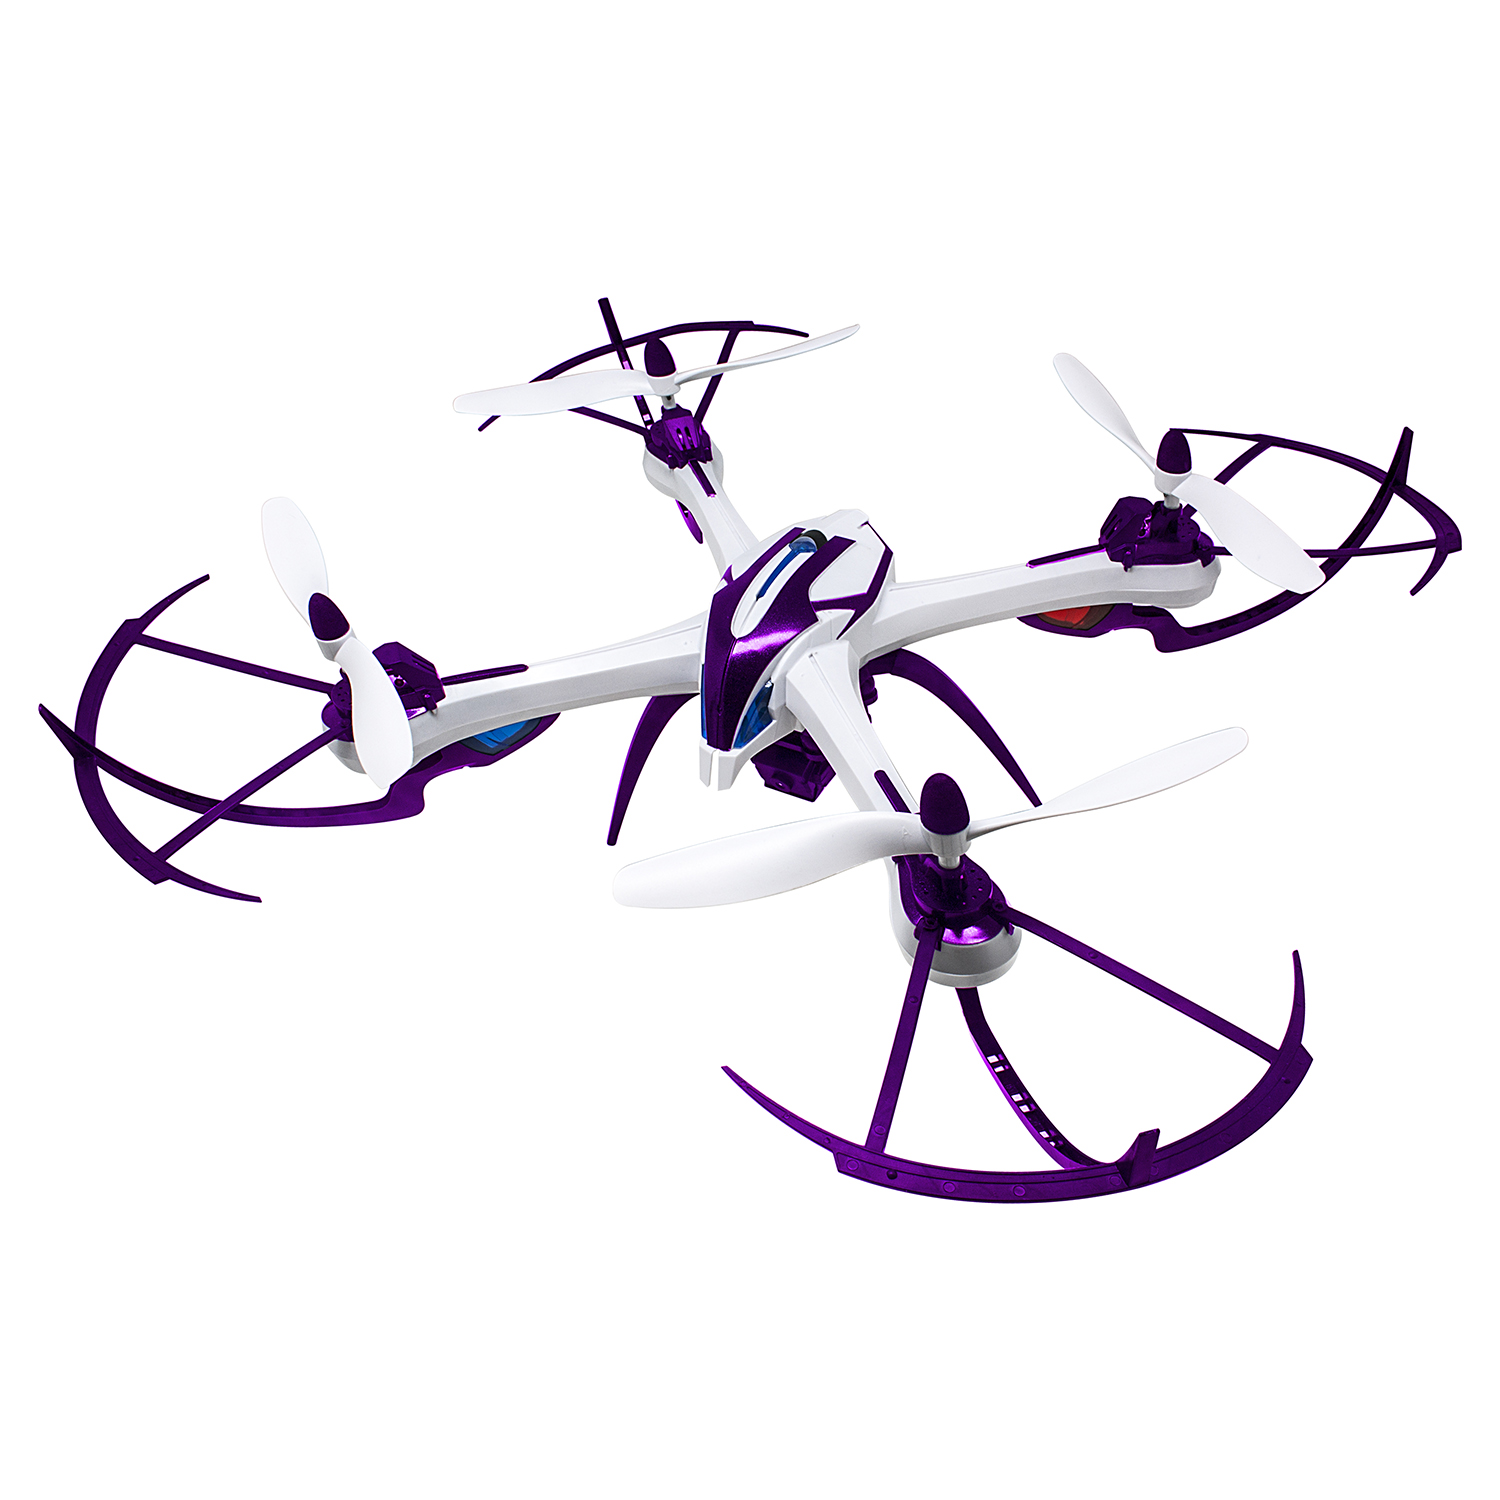 Aerial Quadrone Sentinel Drone Toy with 5MP Camera with 360° Turns/Flips/Rolls by DGL